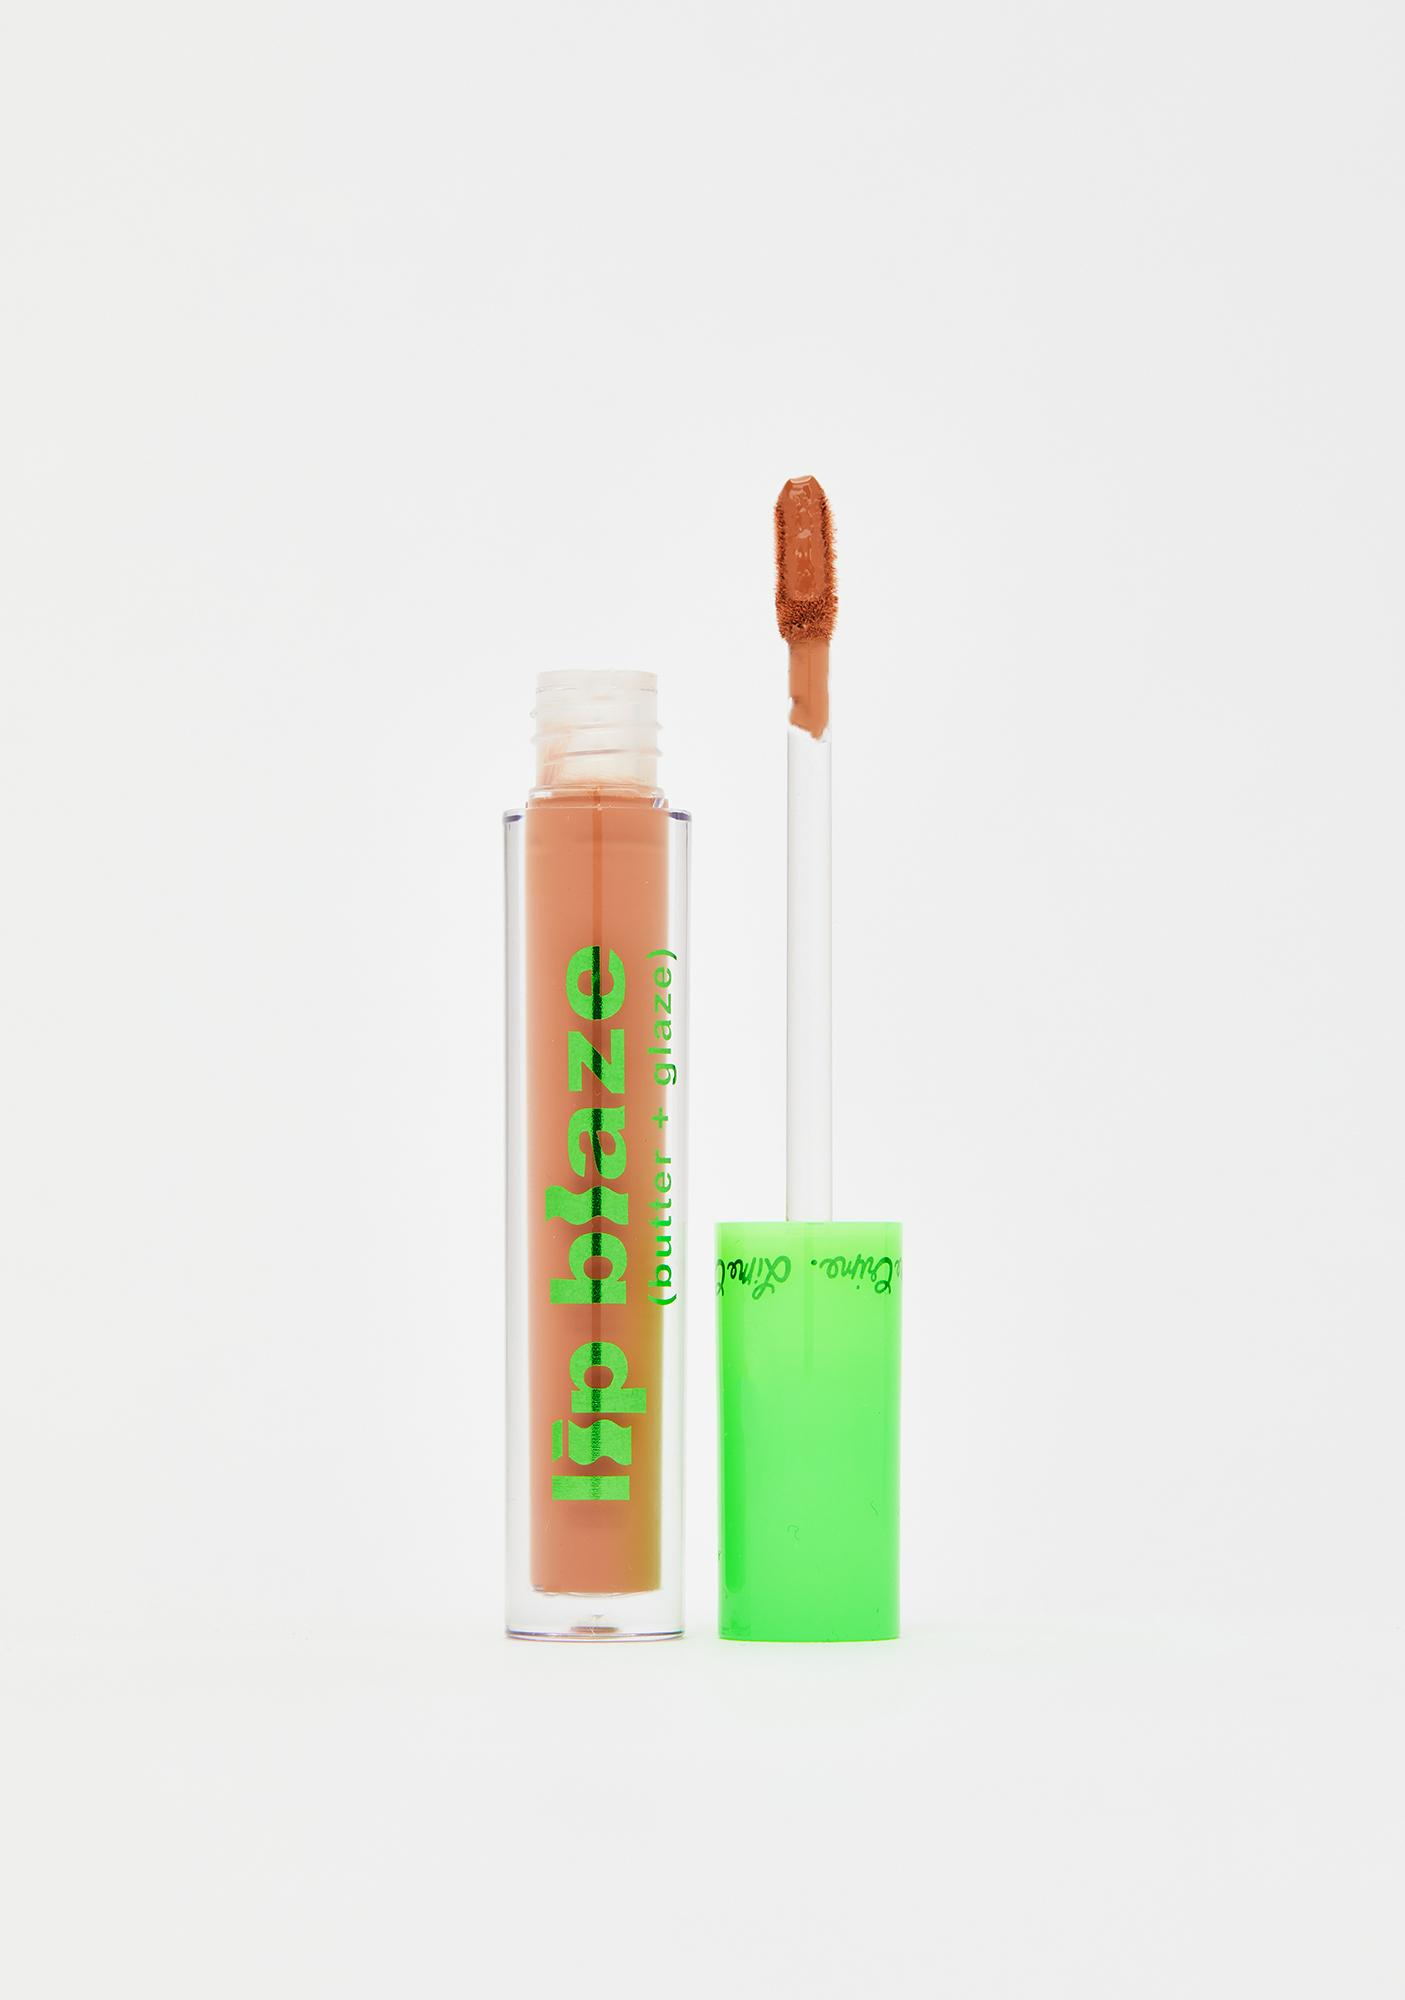 Lime Crime Cali Lip Blaze